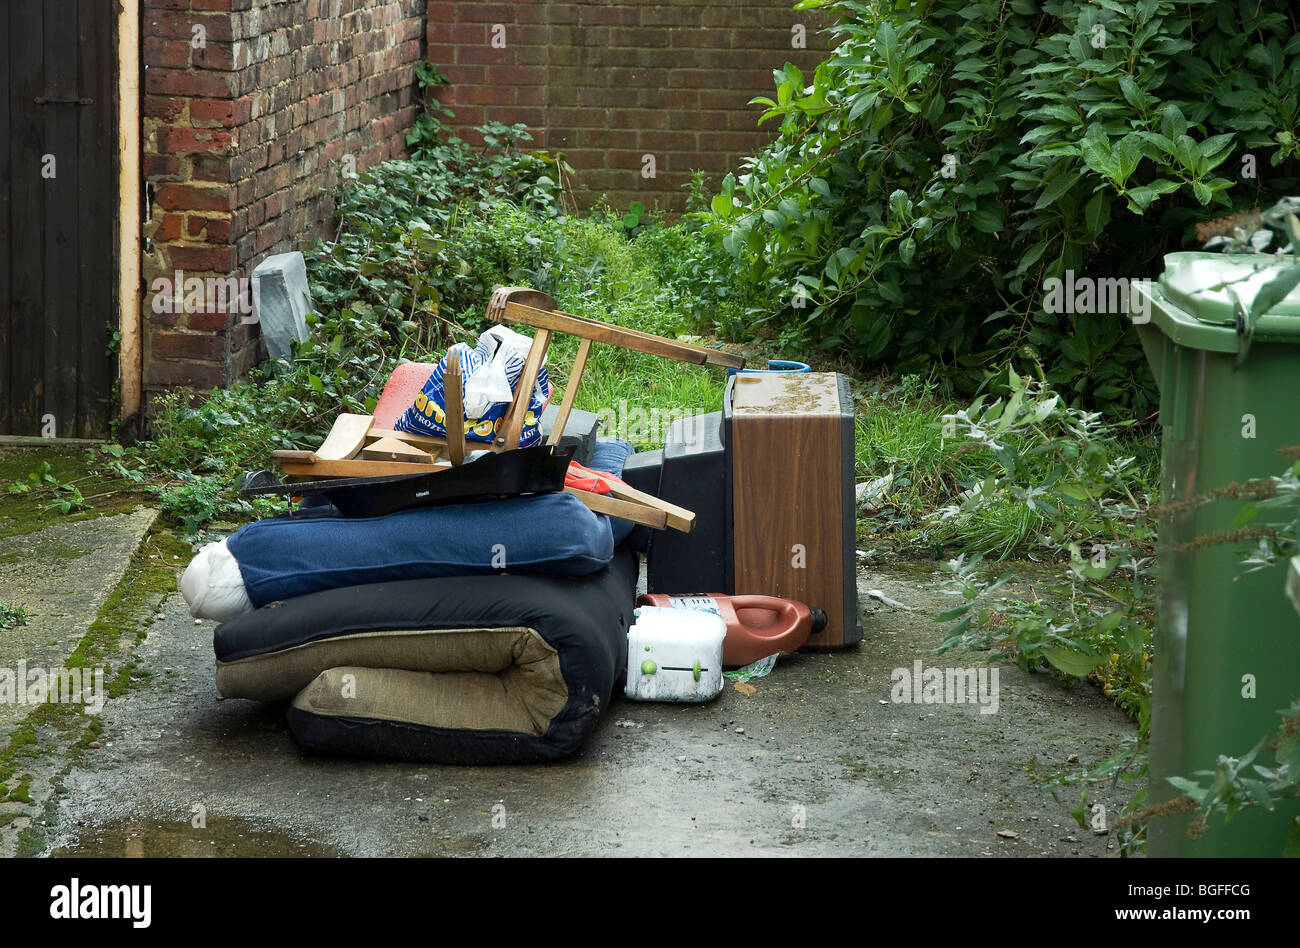 Pile of rubbish left outside a house - Stock Image